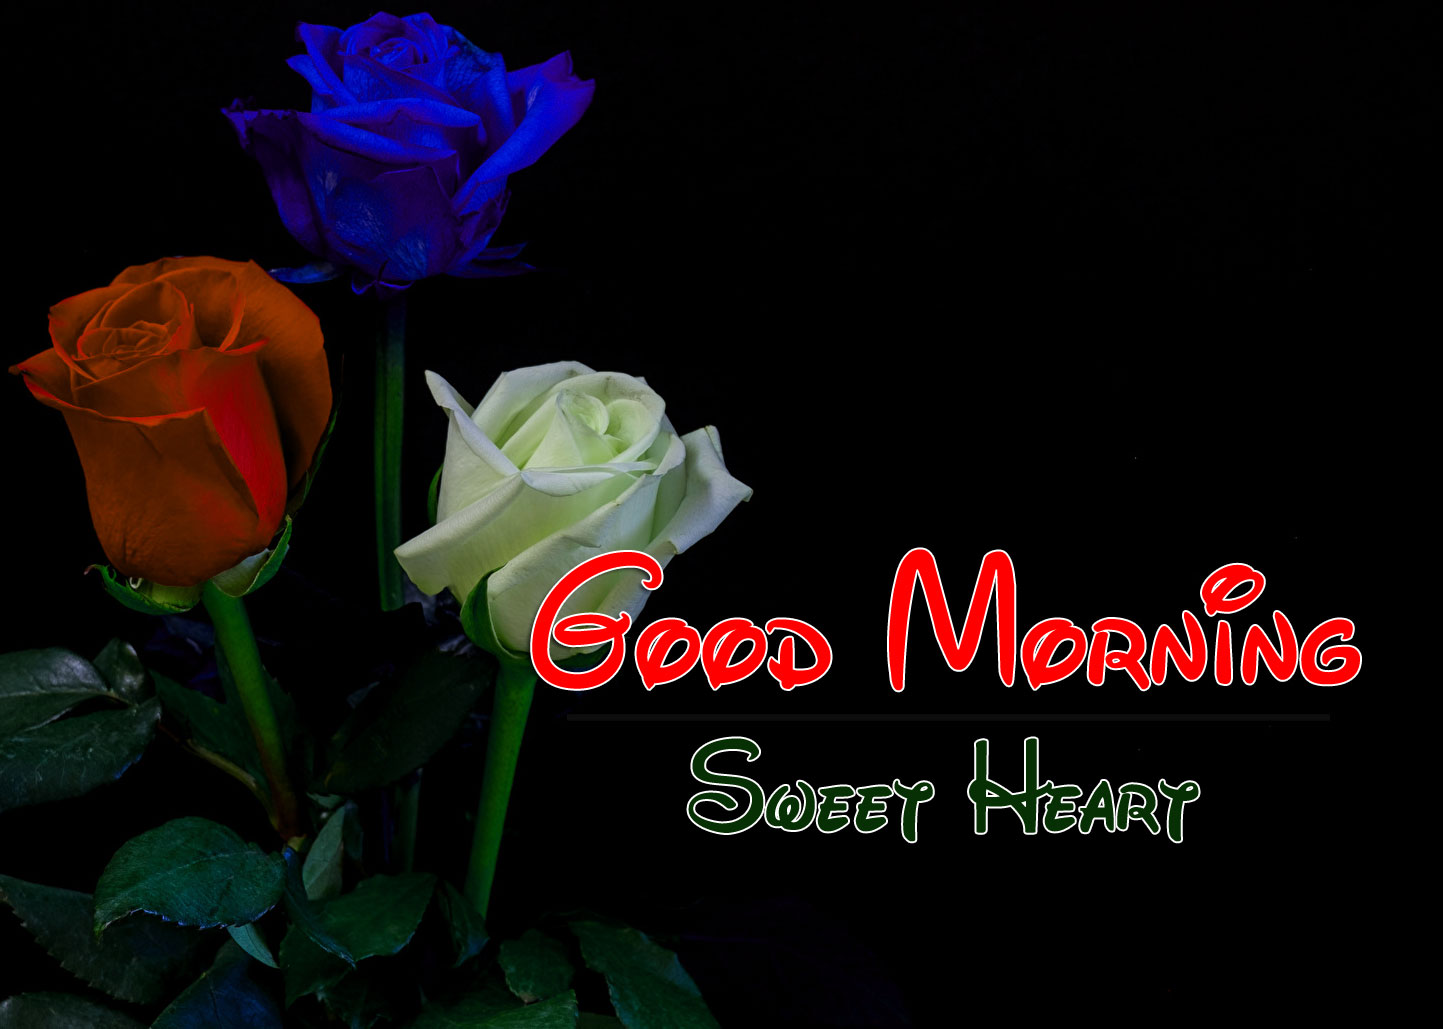 Best HD Good Morning Wishes Wallpaper Download 2